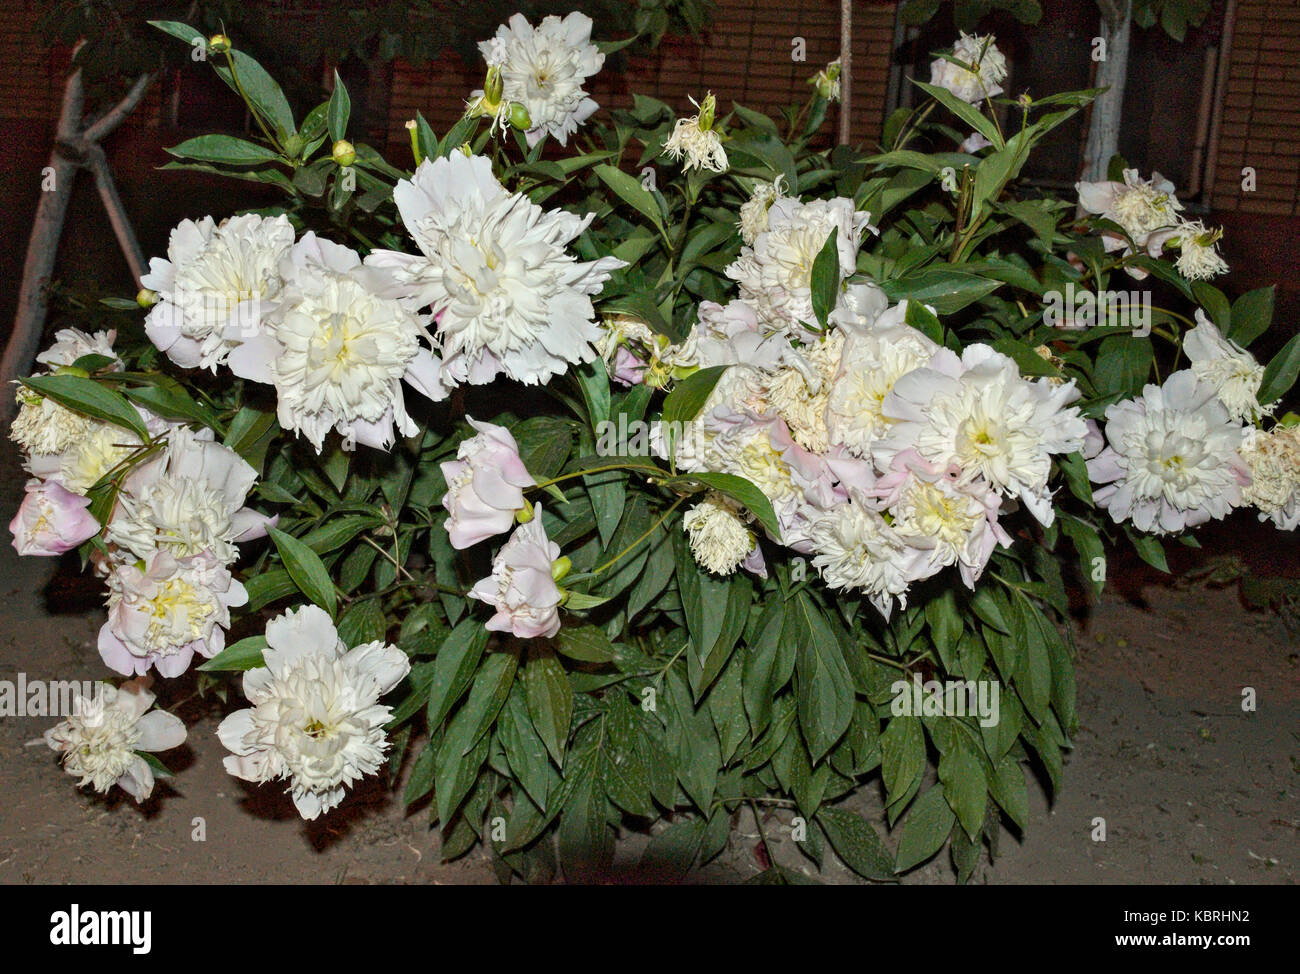 Fine plant with big white flowers photos wedding and flowers beautiful plant with big white flowers contemporary wedding and mightylinksfo Images